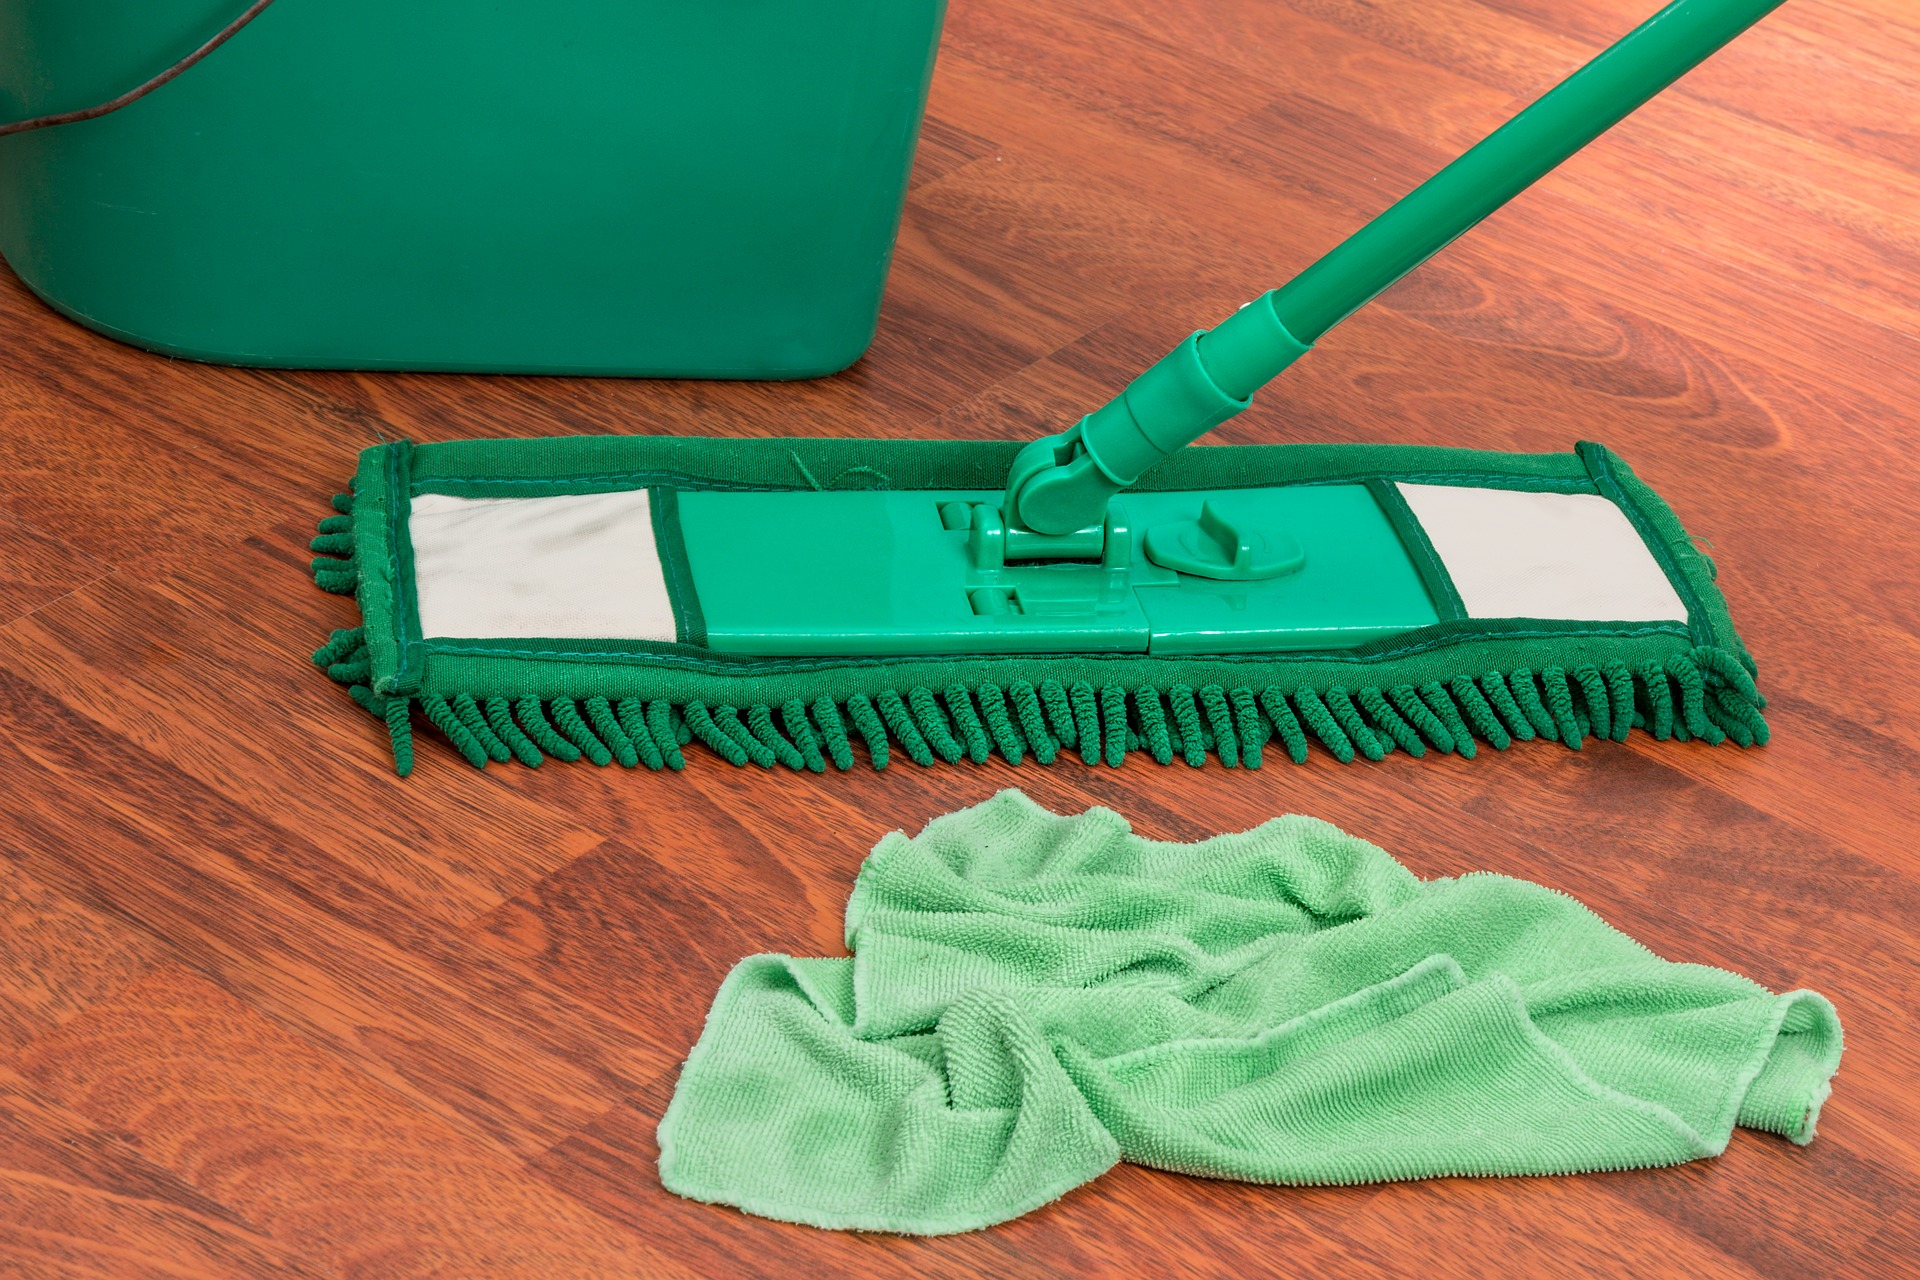 How to Mop Wooden Floors Correctly